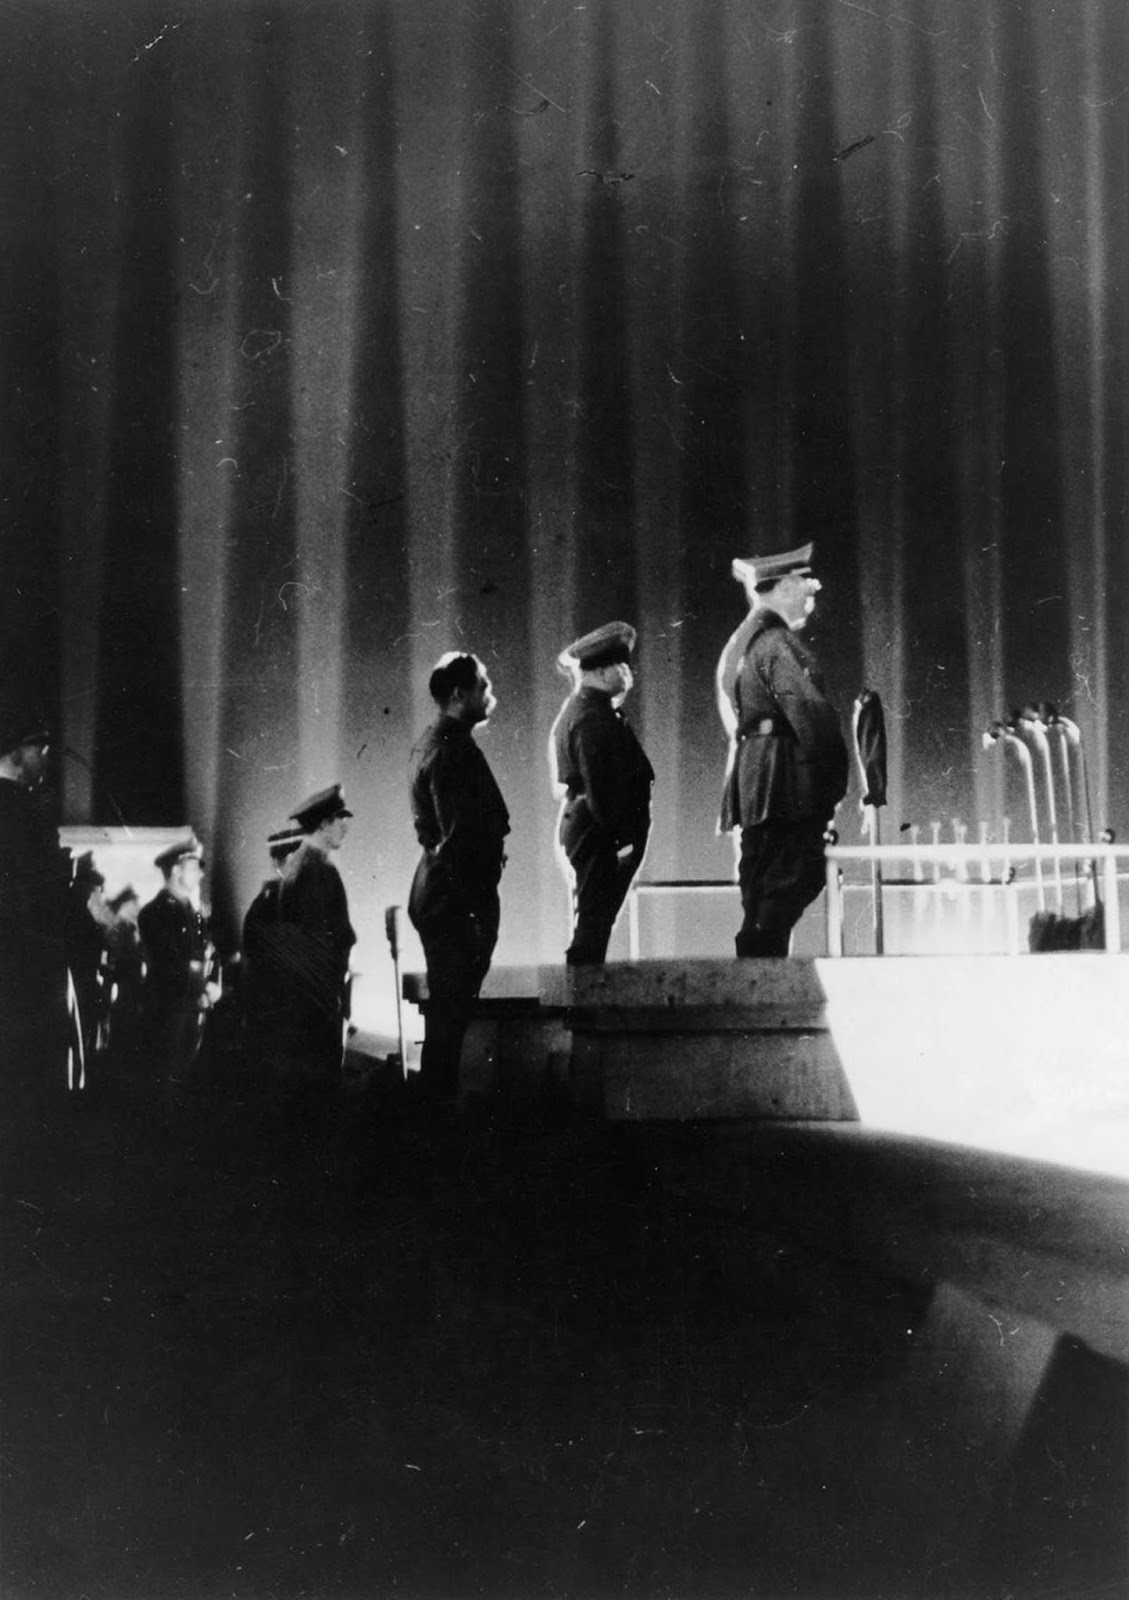 Hitler on the podium.